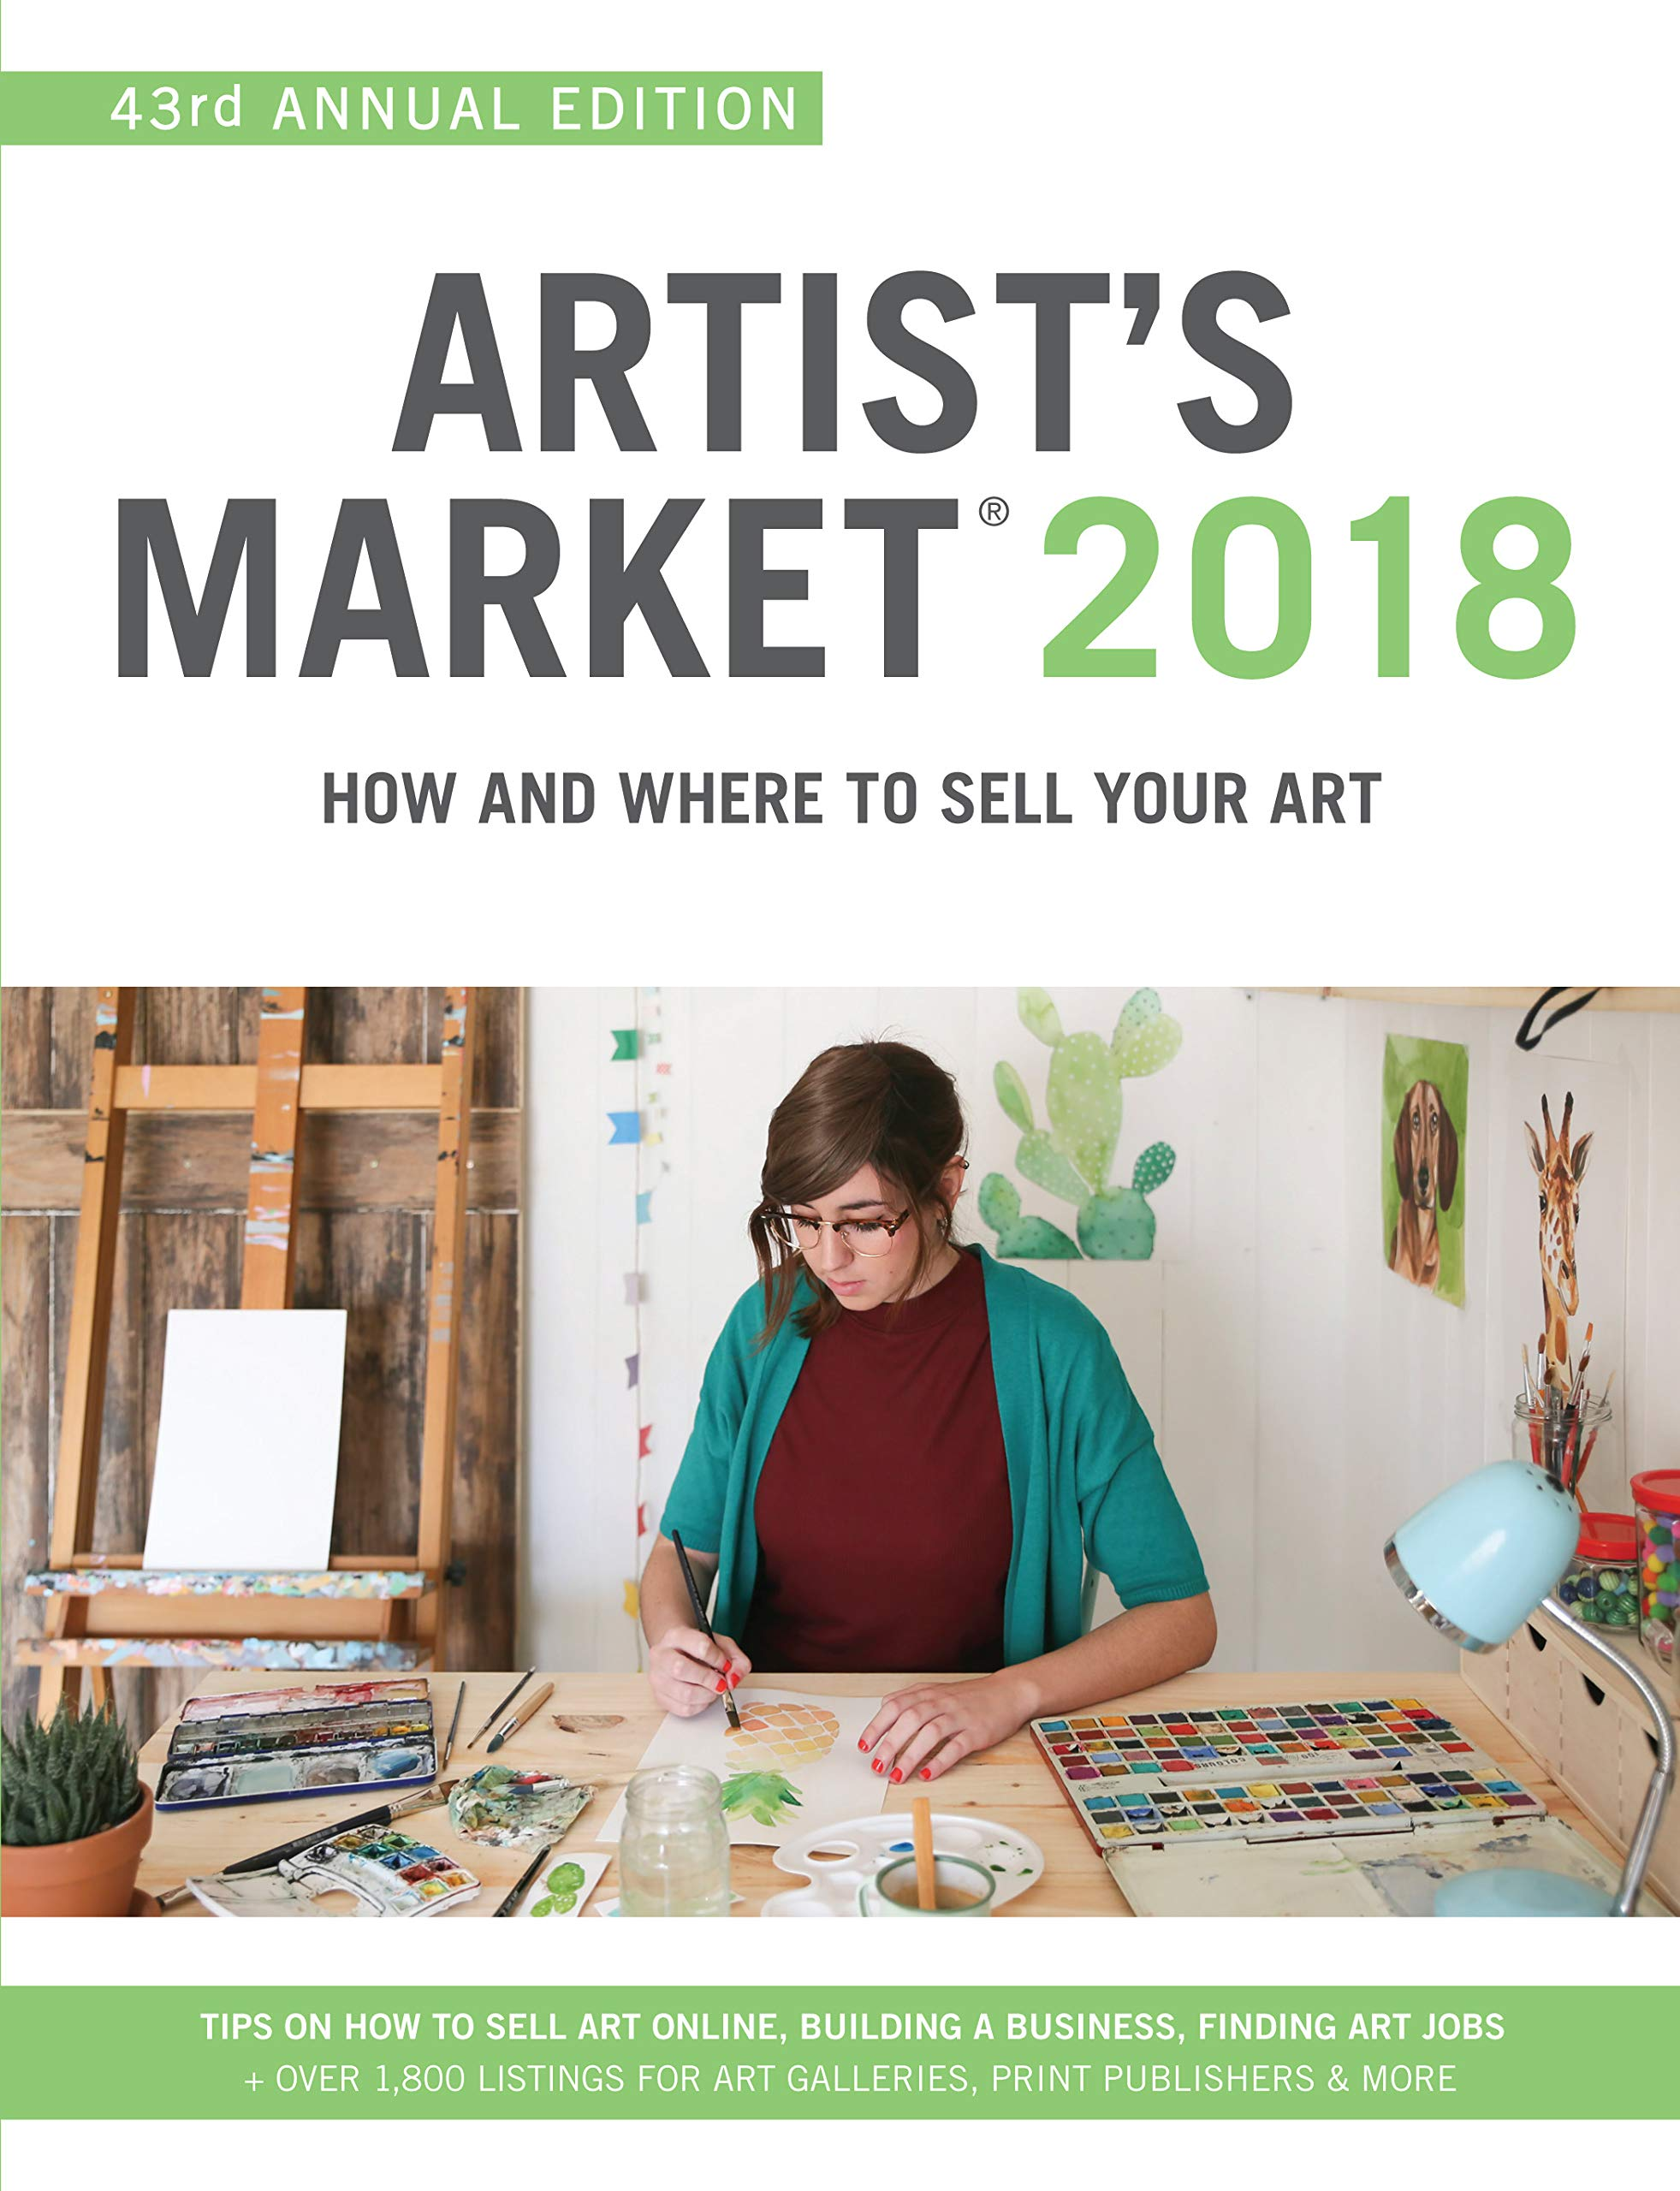 Artist's Market 2018: How and Where to Sell Your Art